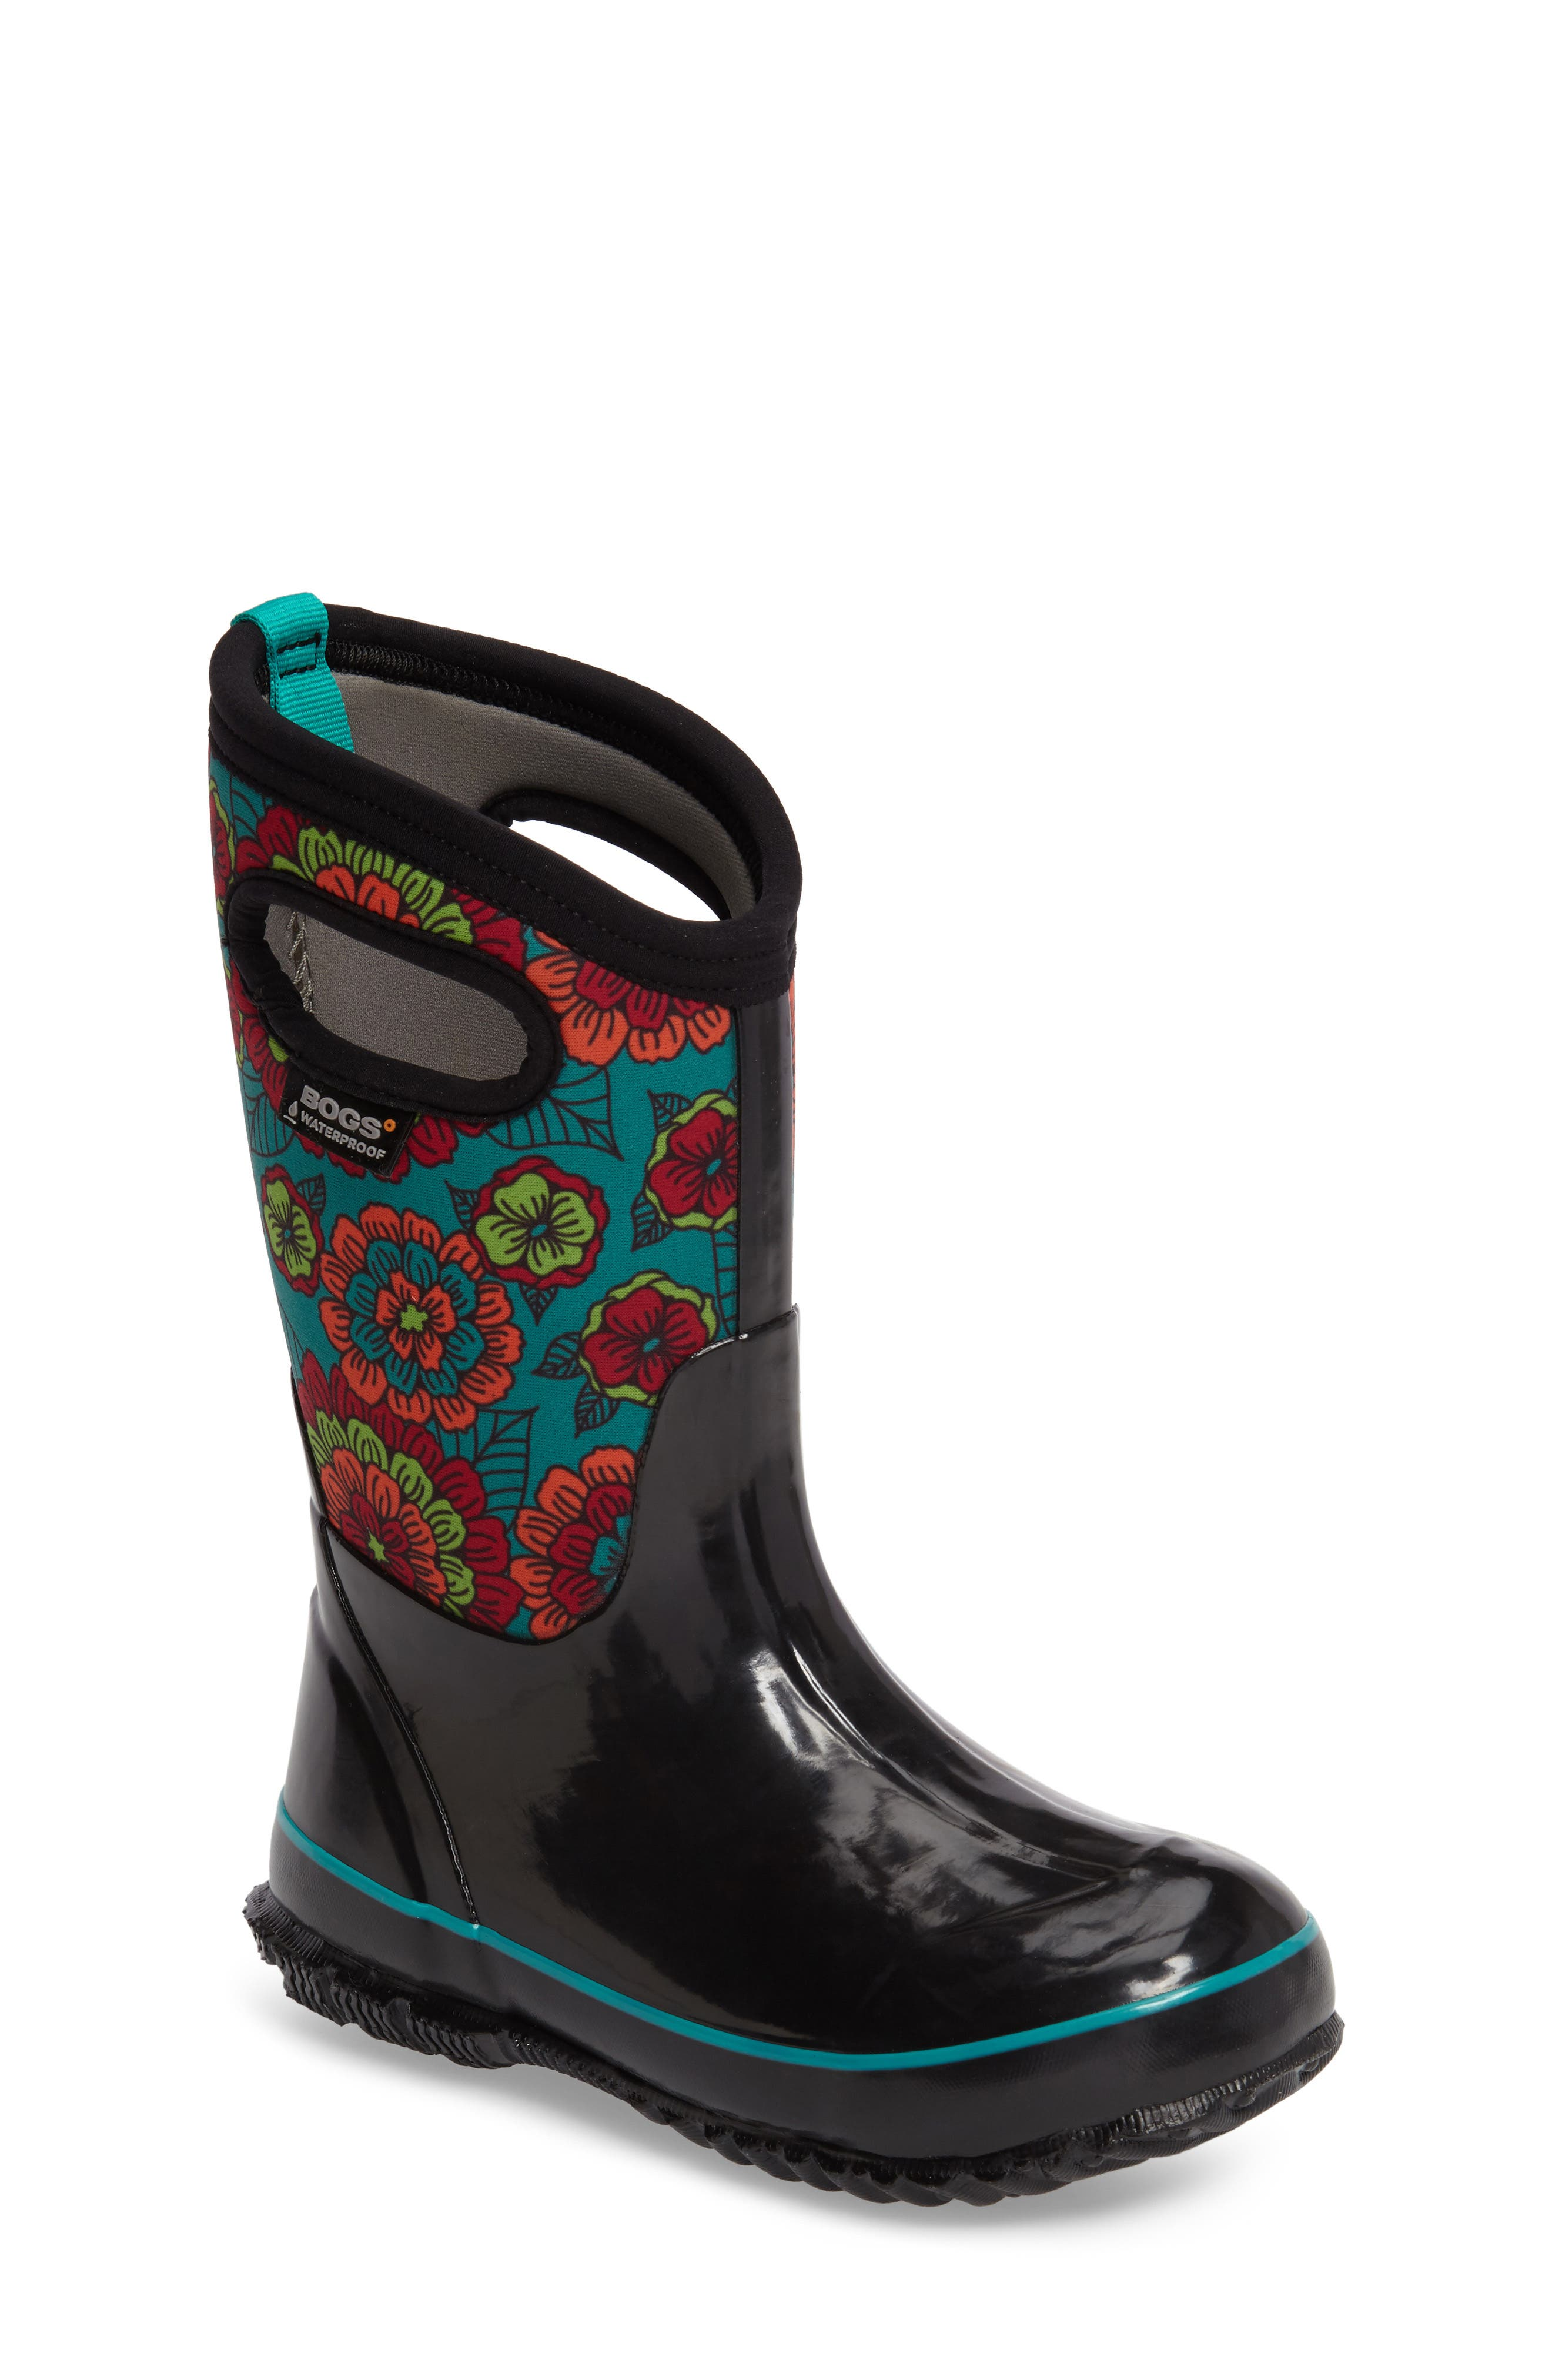 BOGS Classic Pansies Insulated Waterproof Rain Boot, Main, color, 005